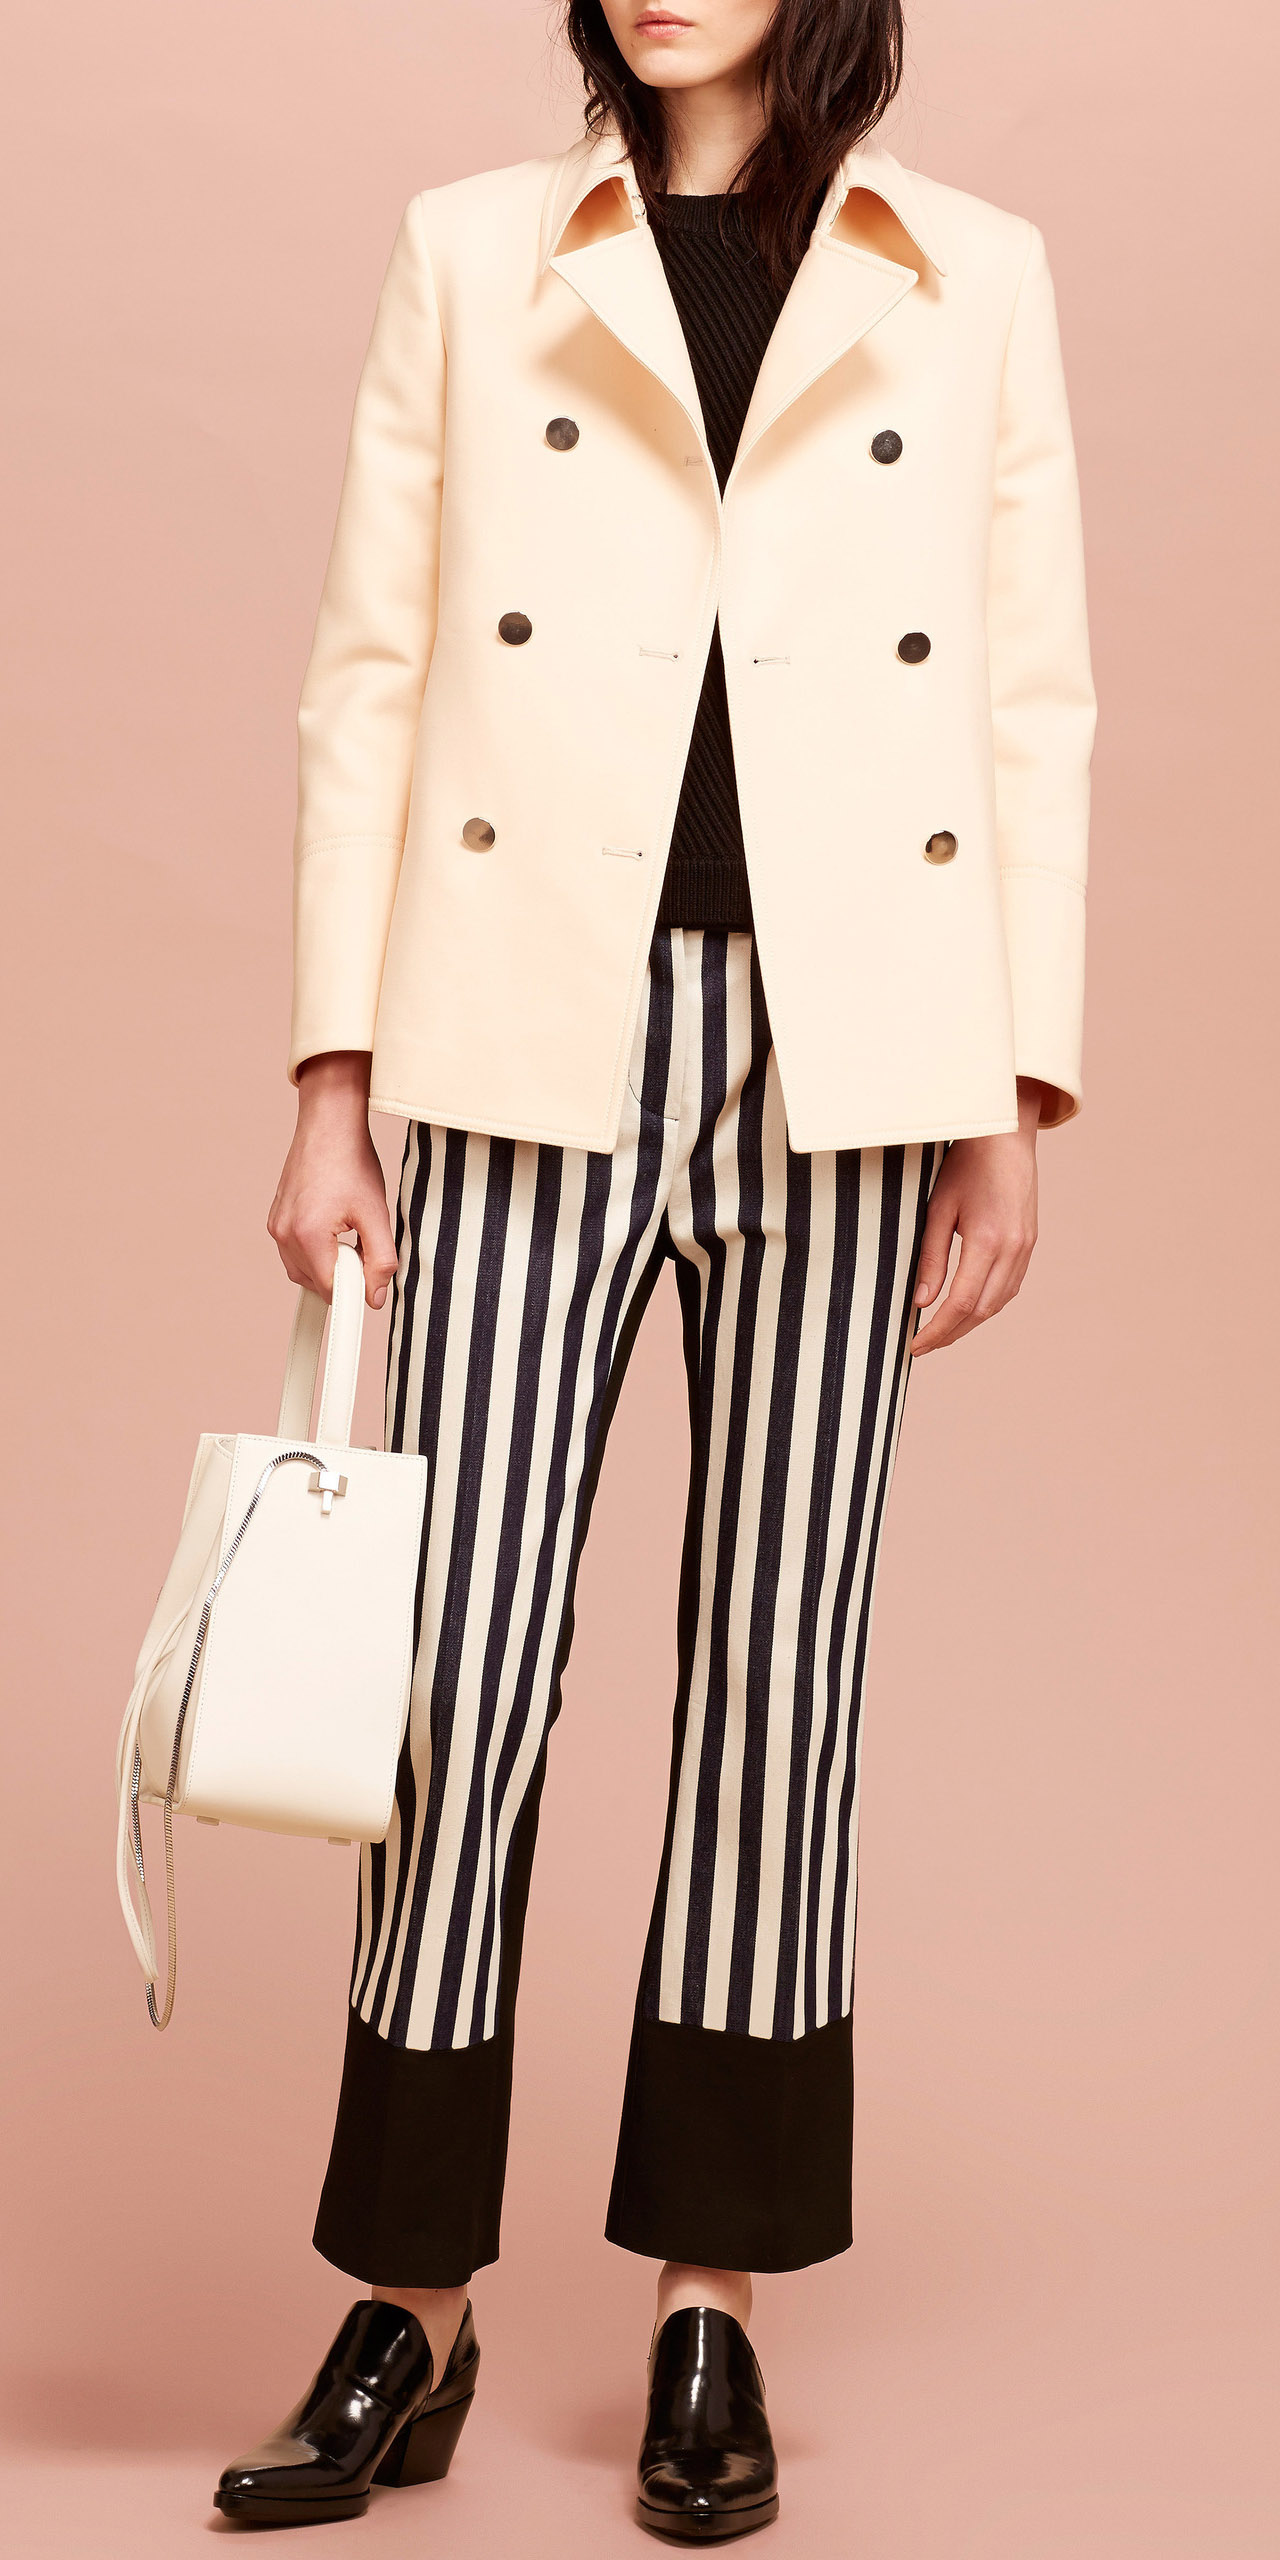 white-wideleg-pants-vertical-stripe-white-bag-black-sweater-black-shoe-loafers-white-jacket-coat-peacoat-fall-winter-lunch.jpg